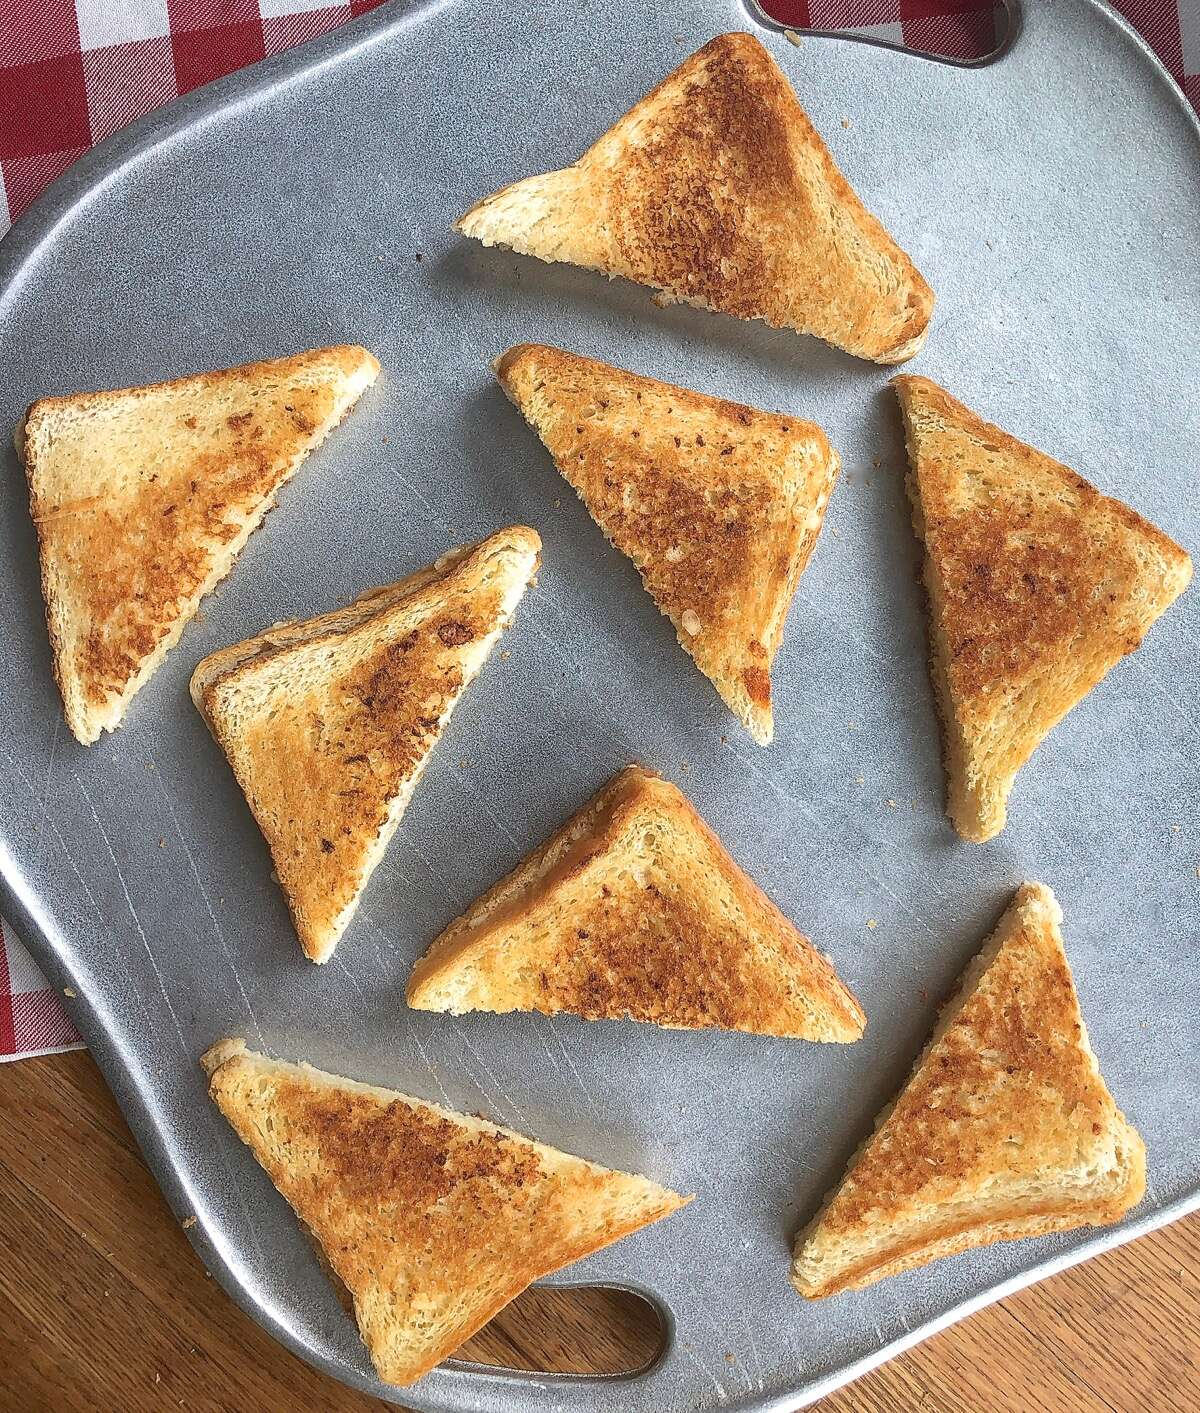 Grilled cheese sandwiches cut in triangles, arranged on a serving plate